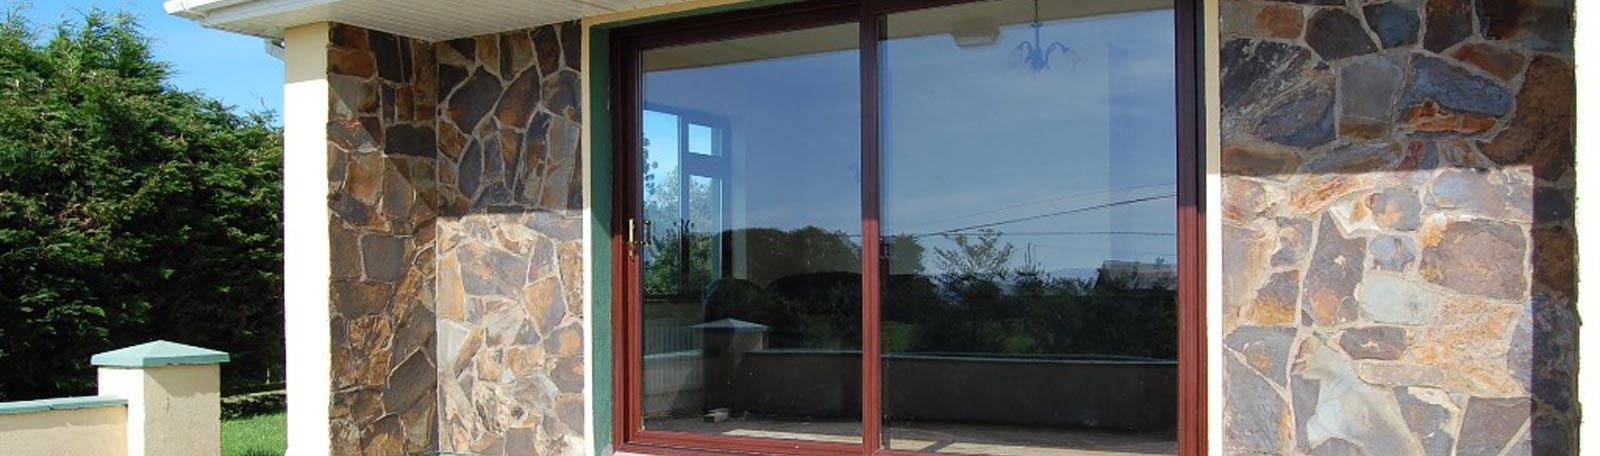 Sliding Patio Doors – PVC and Alu-clad doors